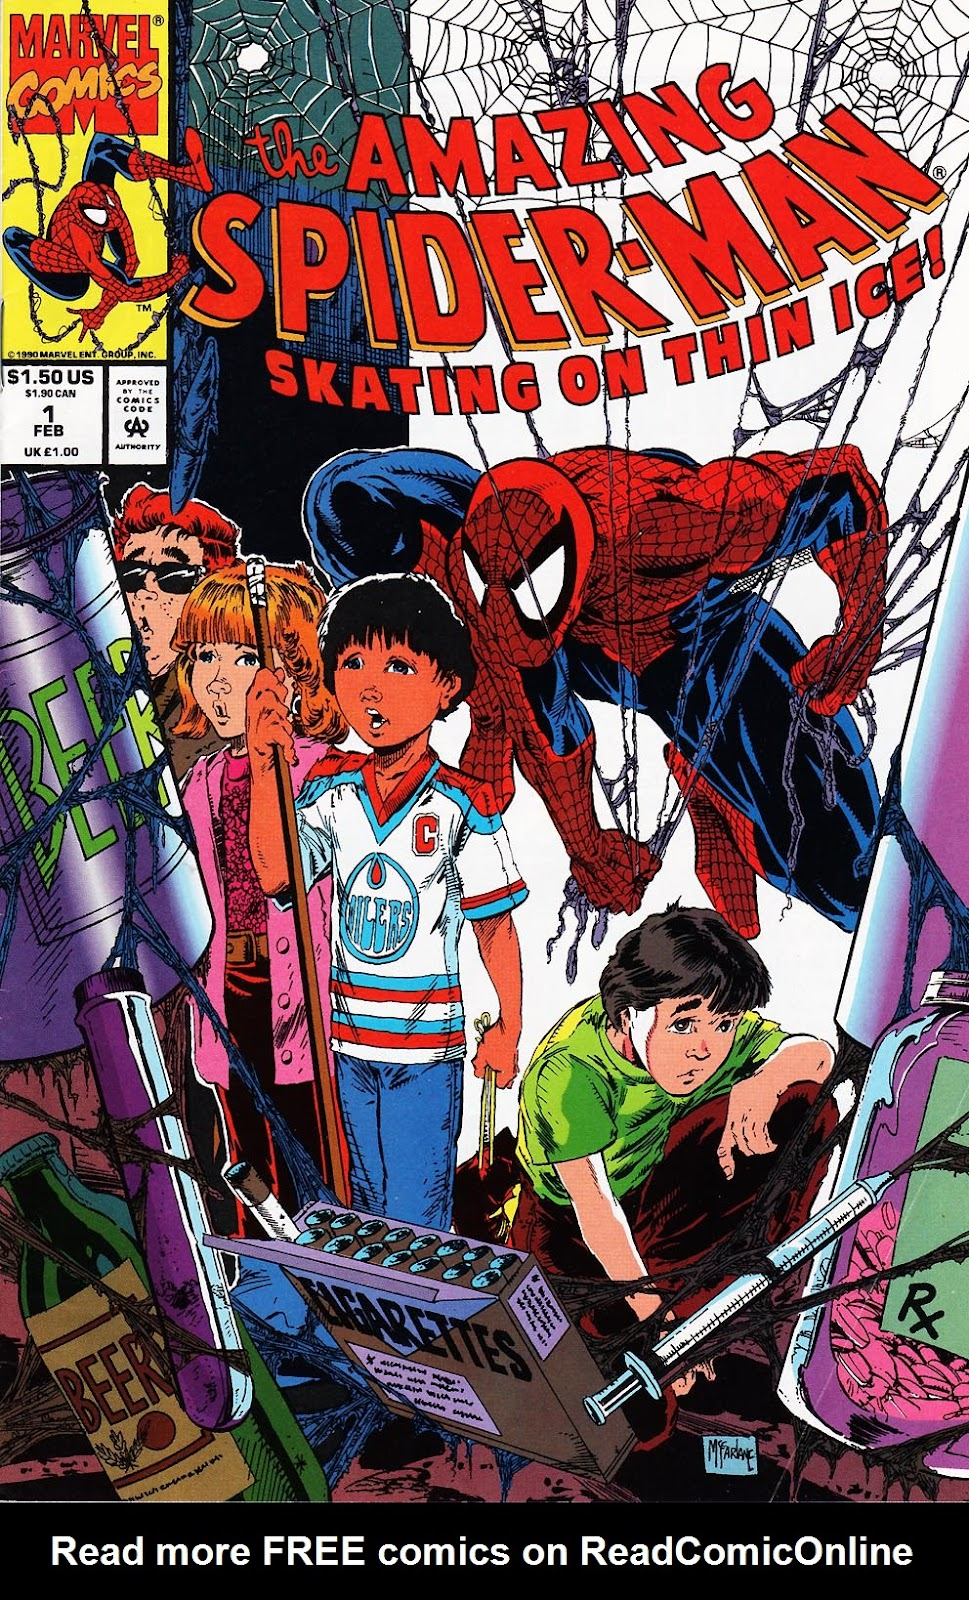 The Amazing Spider-Man: Skating on Thin Ice Full Page 1